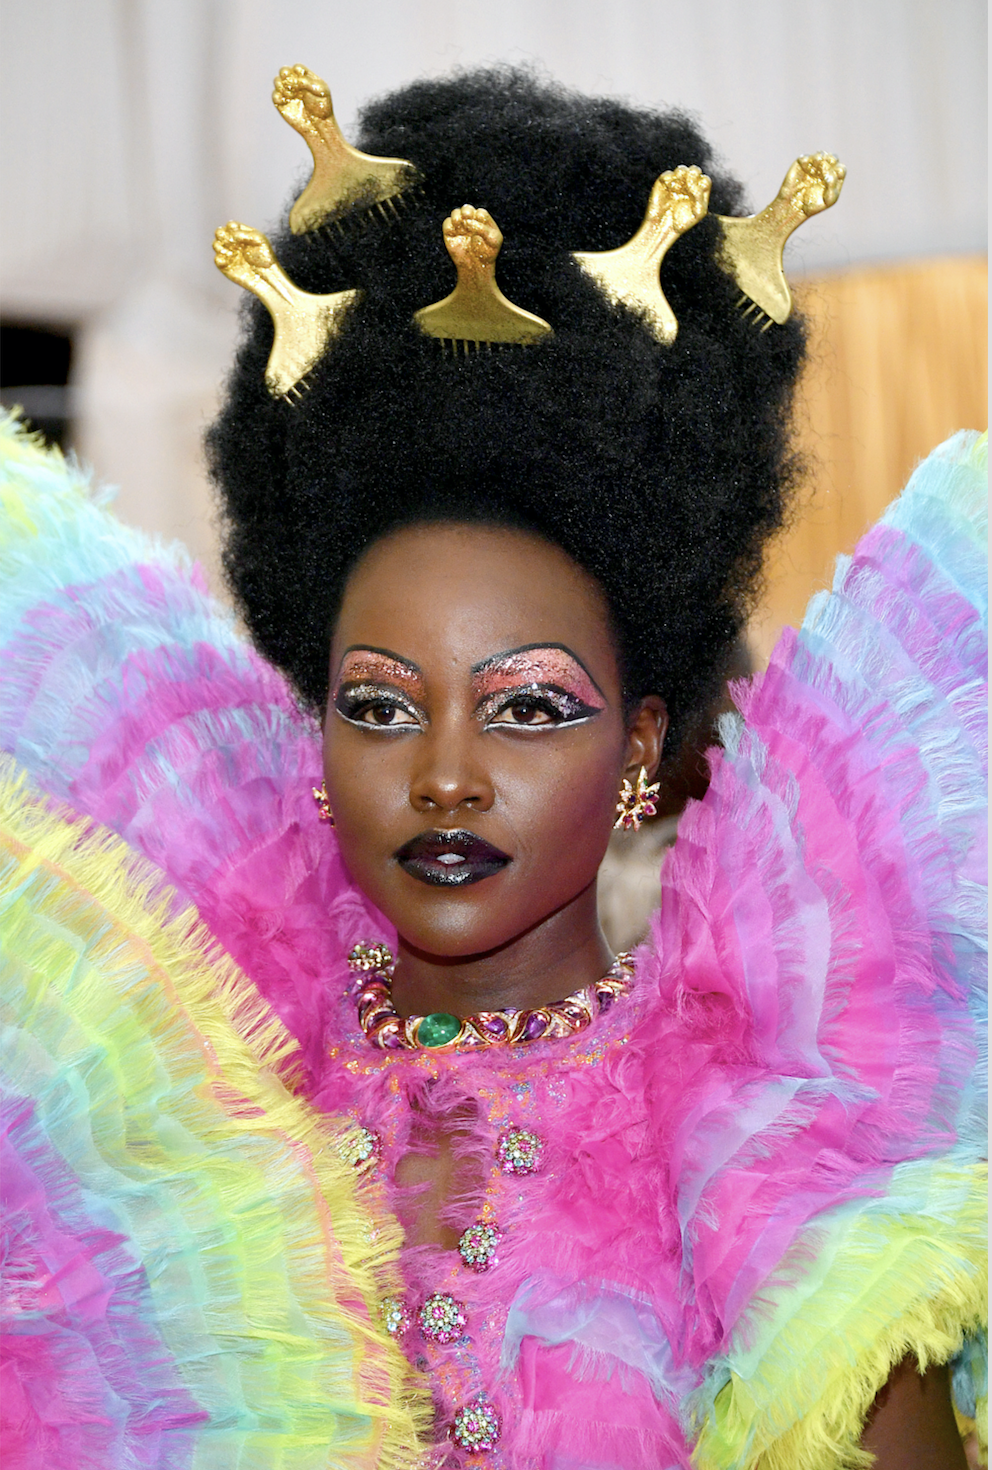 Lupita Nyong'o Leave it to Lupita to pay homage to the culture tonight with gold-painted hair picks in her afro perfected by the one and only Vernon François. I stan— forever.